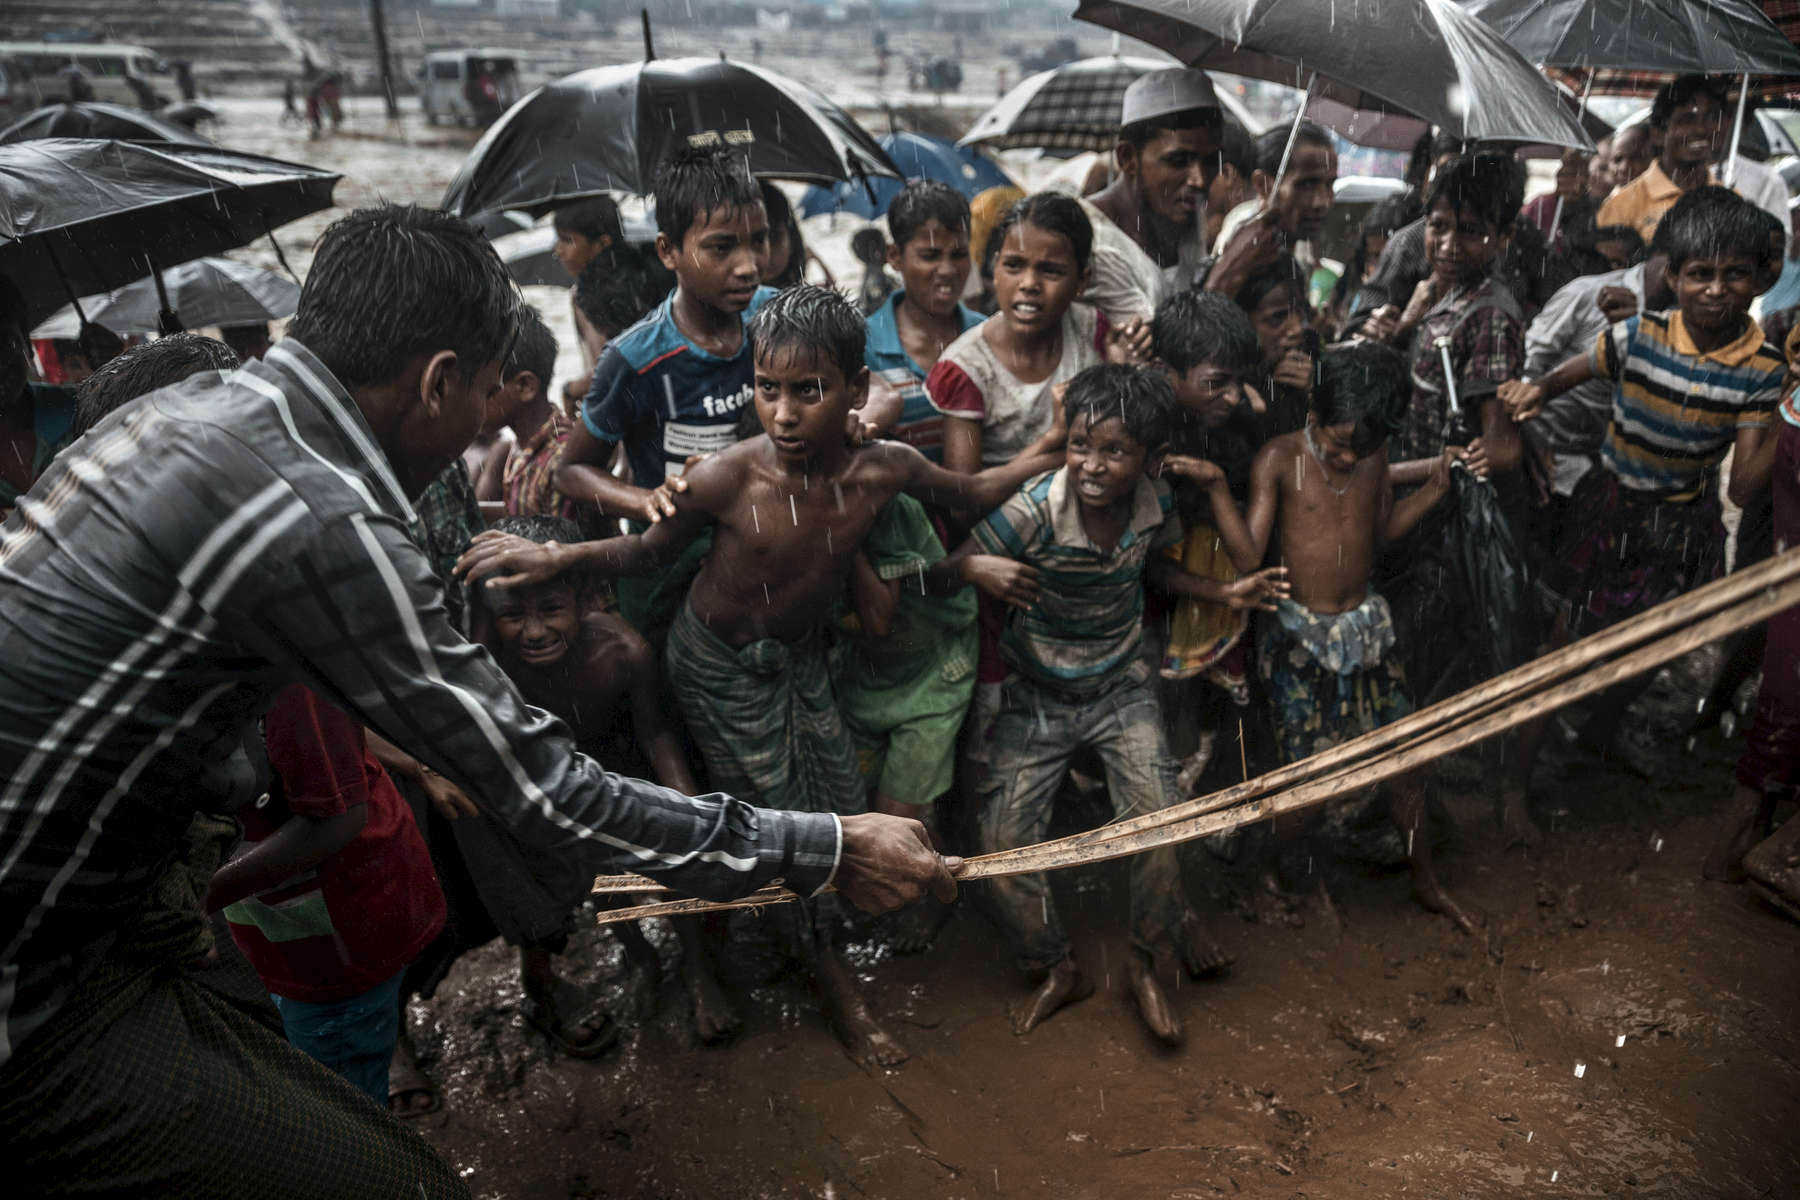 THAINKHALI, BANGLADESH - OCTOBER 7: A man beats anxious Rohingya children as things get out of control during a humanitarian aid distribution while monsoon rains continue to batter the area causing more difficulties October 7, Thainkhali camp, Cox's Bazar, Bangladesh. Well over a half a million Rohingya refugees have fled into Bangladesh since late August during the outbreak of violence in Rakhine state causing a humanitarian crisis in the region with continued challenges for aid agencies.